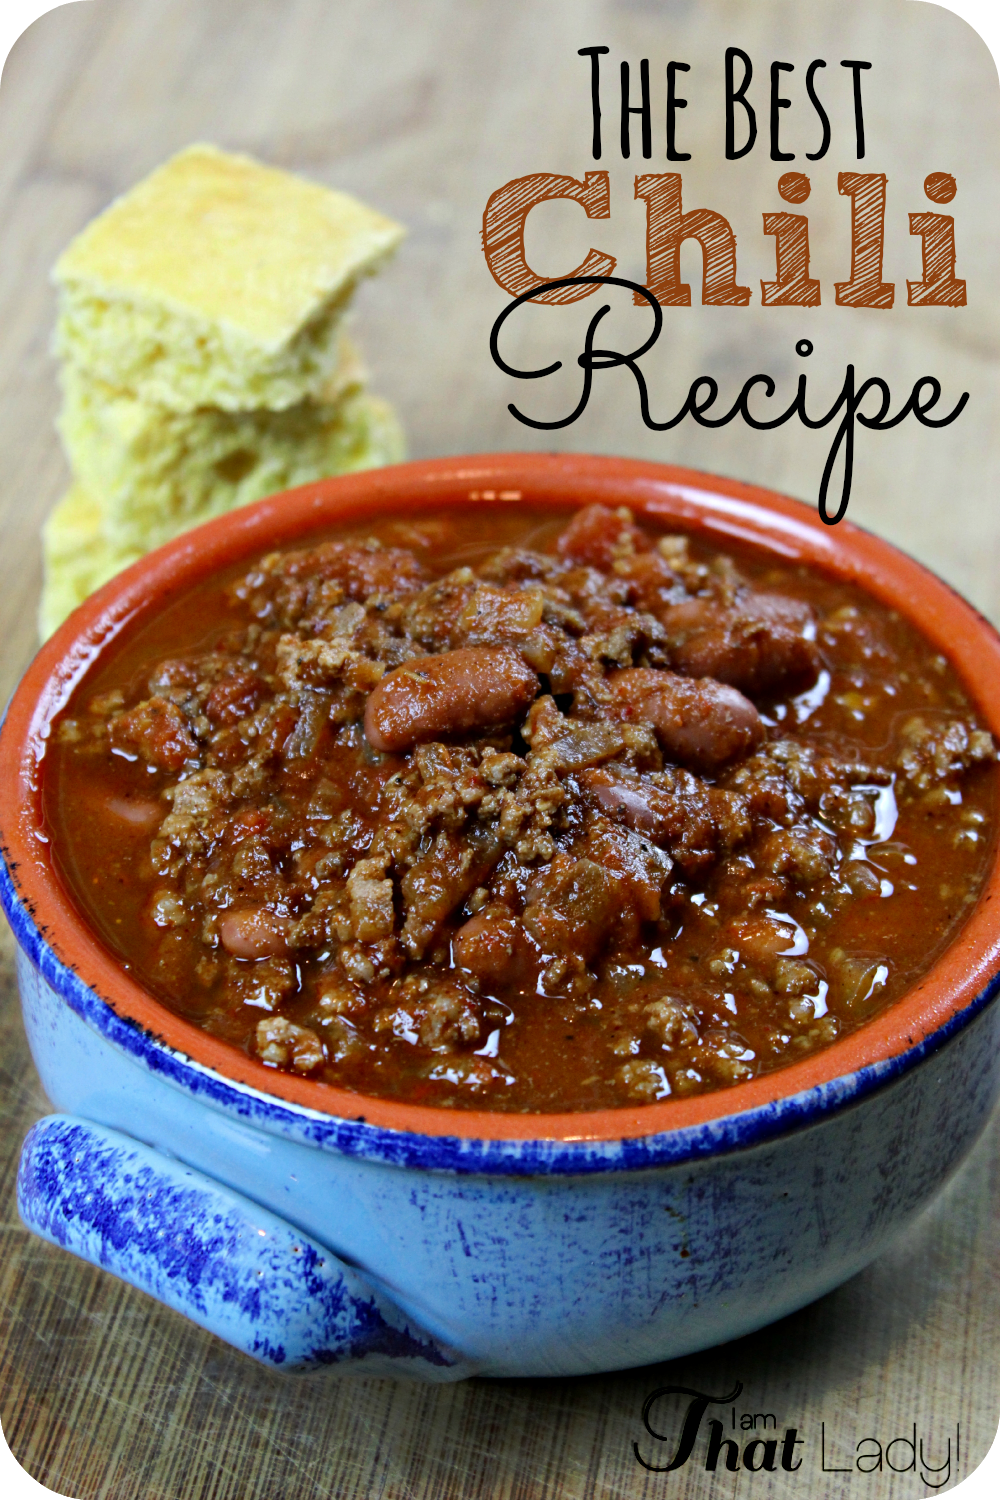 Best Damn Chili Recipe - Allrecipes.com